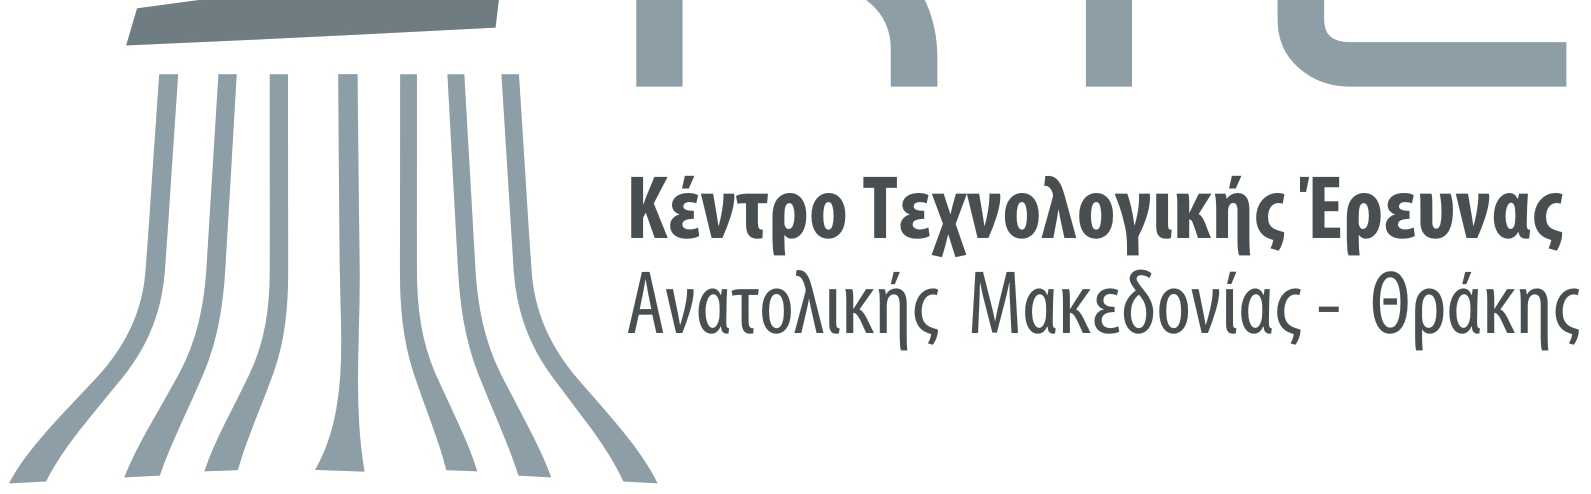 ΑΠΟΛΟΓΙΣΜΟΣ ΡΑΣΕΩΝ ΦΕΣΤΙΒΑΛ ΒΙΟΜΗΧΑΝΙΚΗΣ ΠΛΗΡΟΦΟΡΙΚΗΣ INDUSTRIAL INFORMATICS FESTIVAL REVIEW ( i2fest2011) 10-13/11/2011 Centre of Technological Research of Eastern Macedonia & Thrace Regional